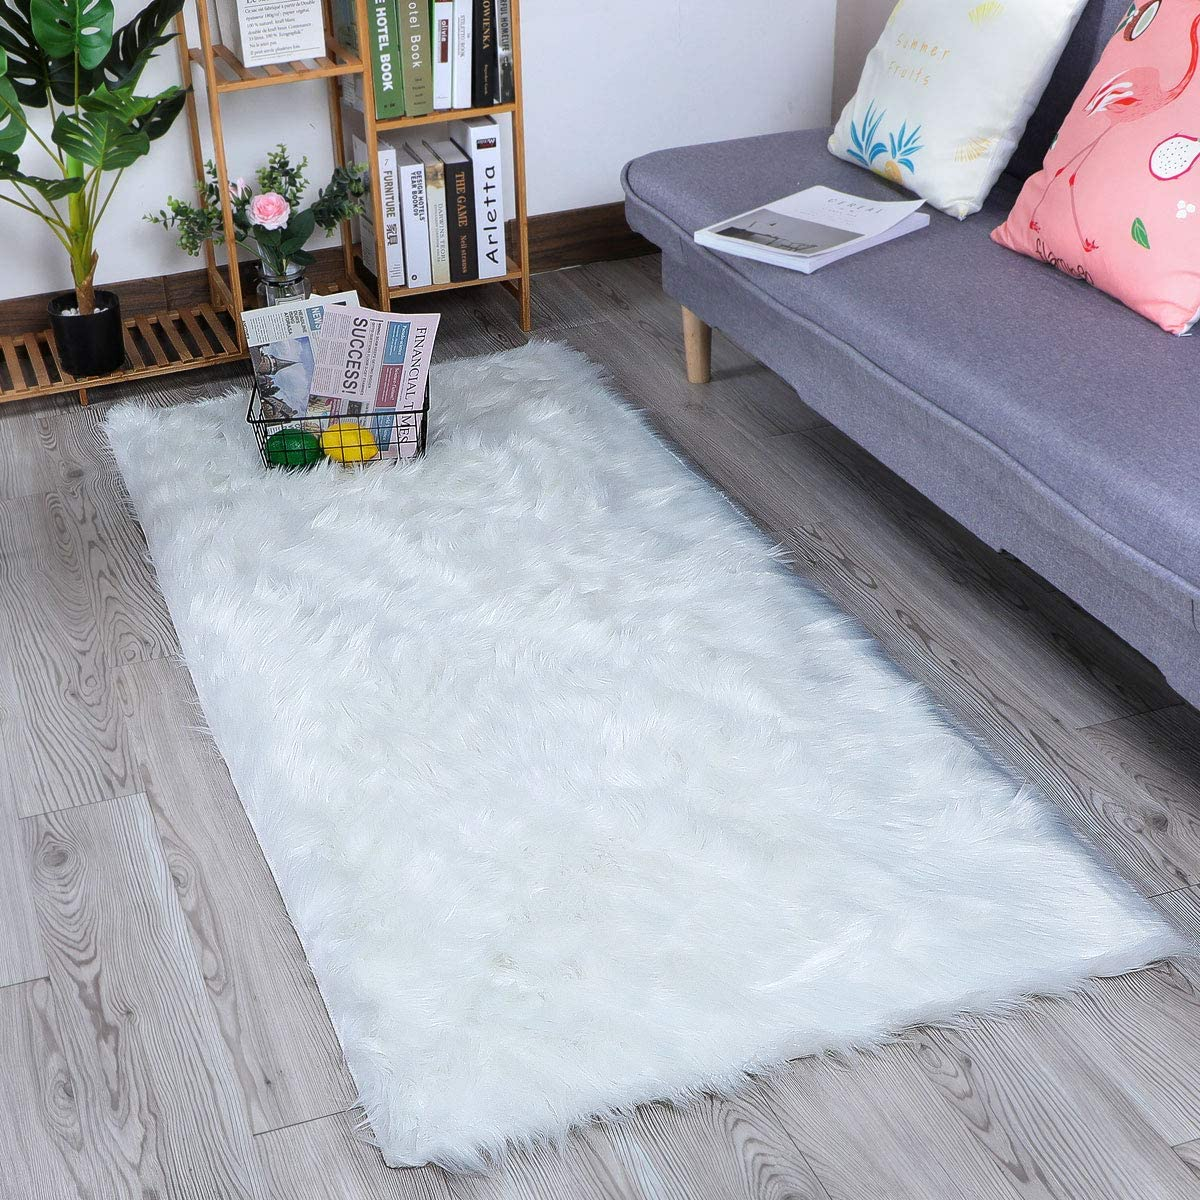 HLZHOU Faux Sheepskin Rug Soft Fluffy Chair Cover Seat Pad Home Decoration Area Rugs for Bedroom Sofa Floor 2.6×6 Feet 80x180cm , Square White